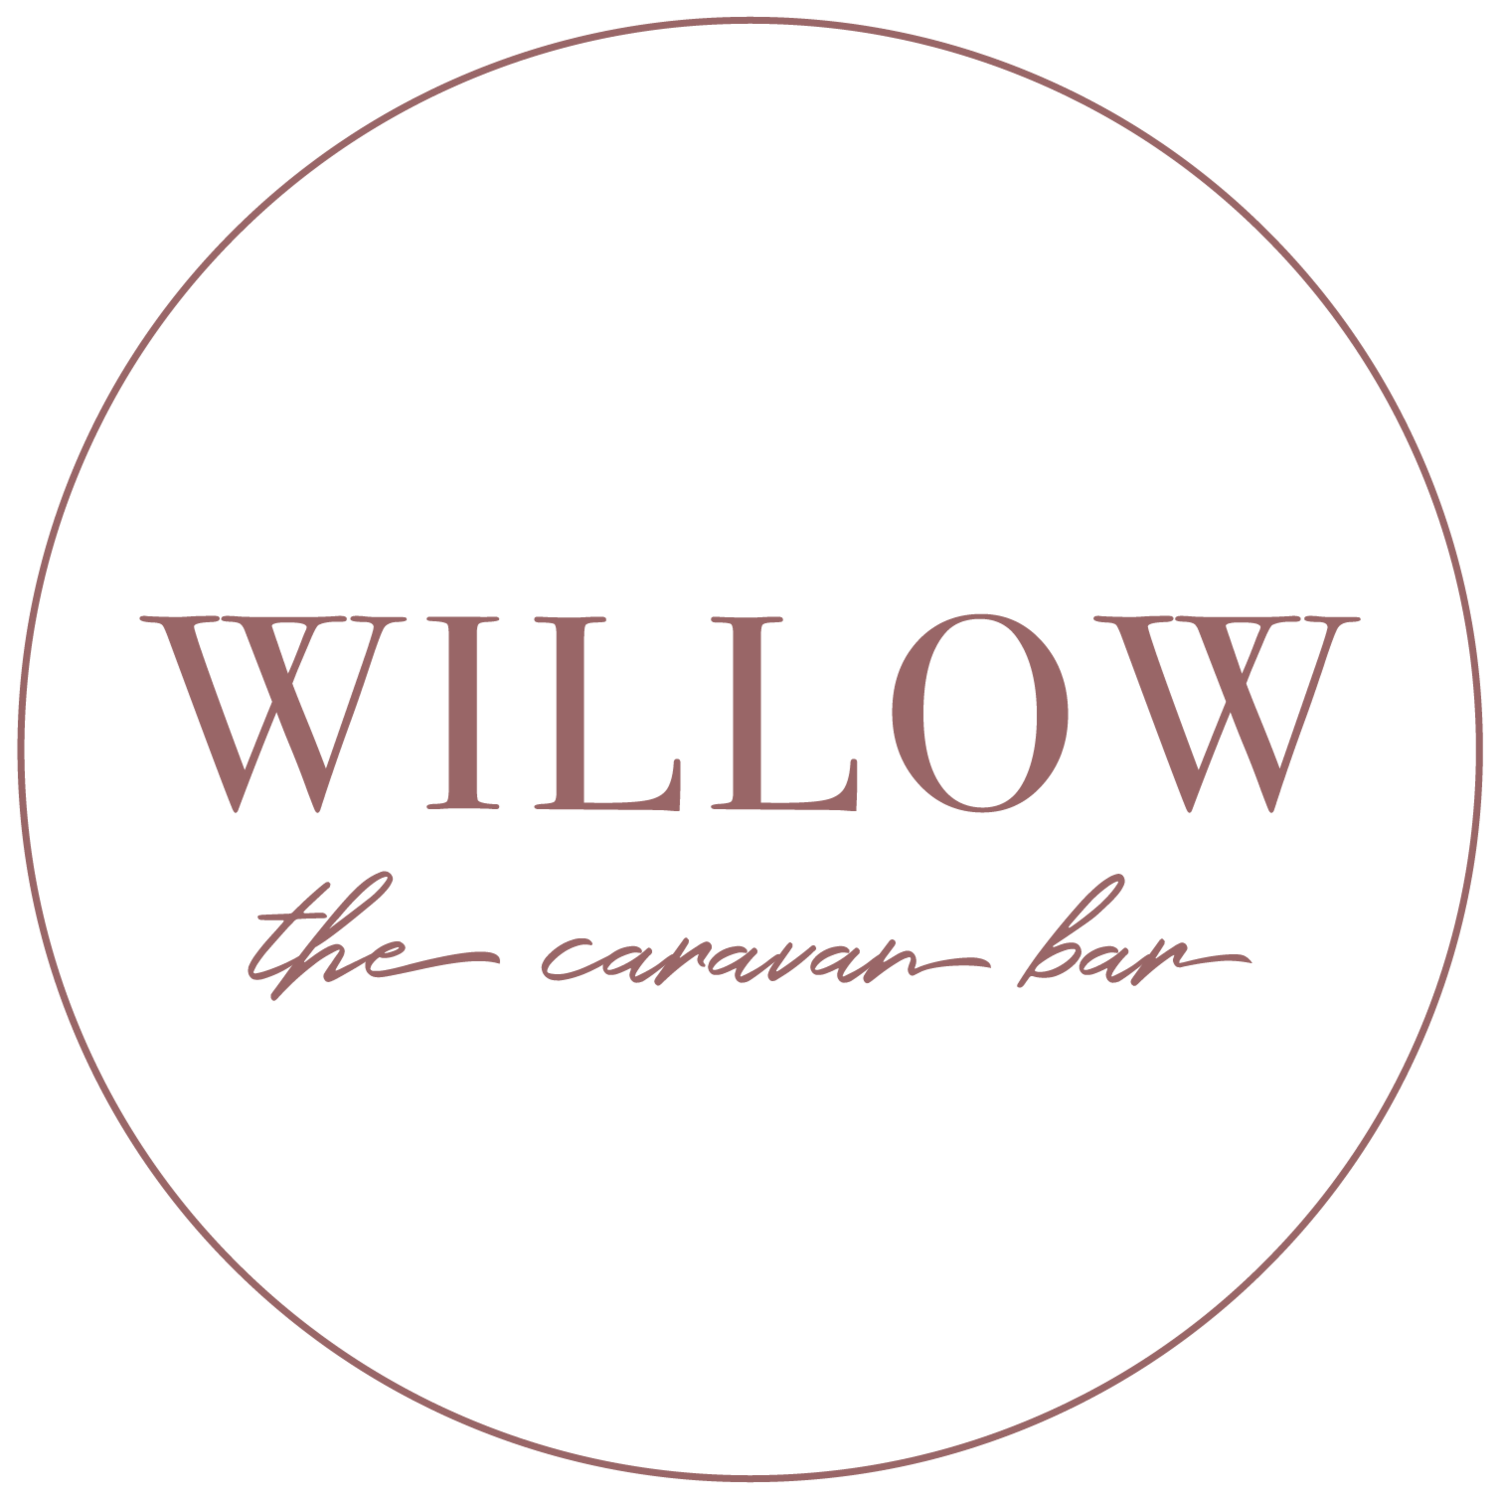 Willow the caravan bar